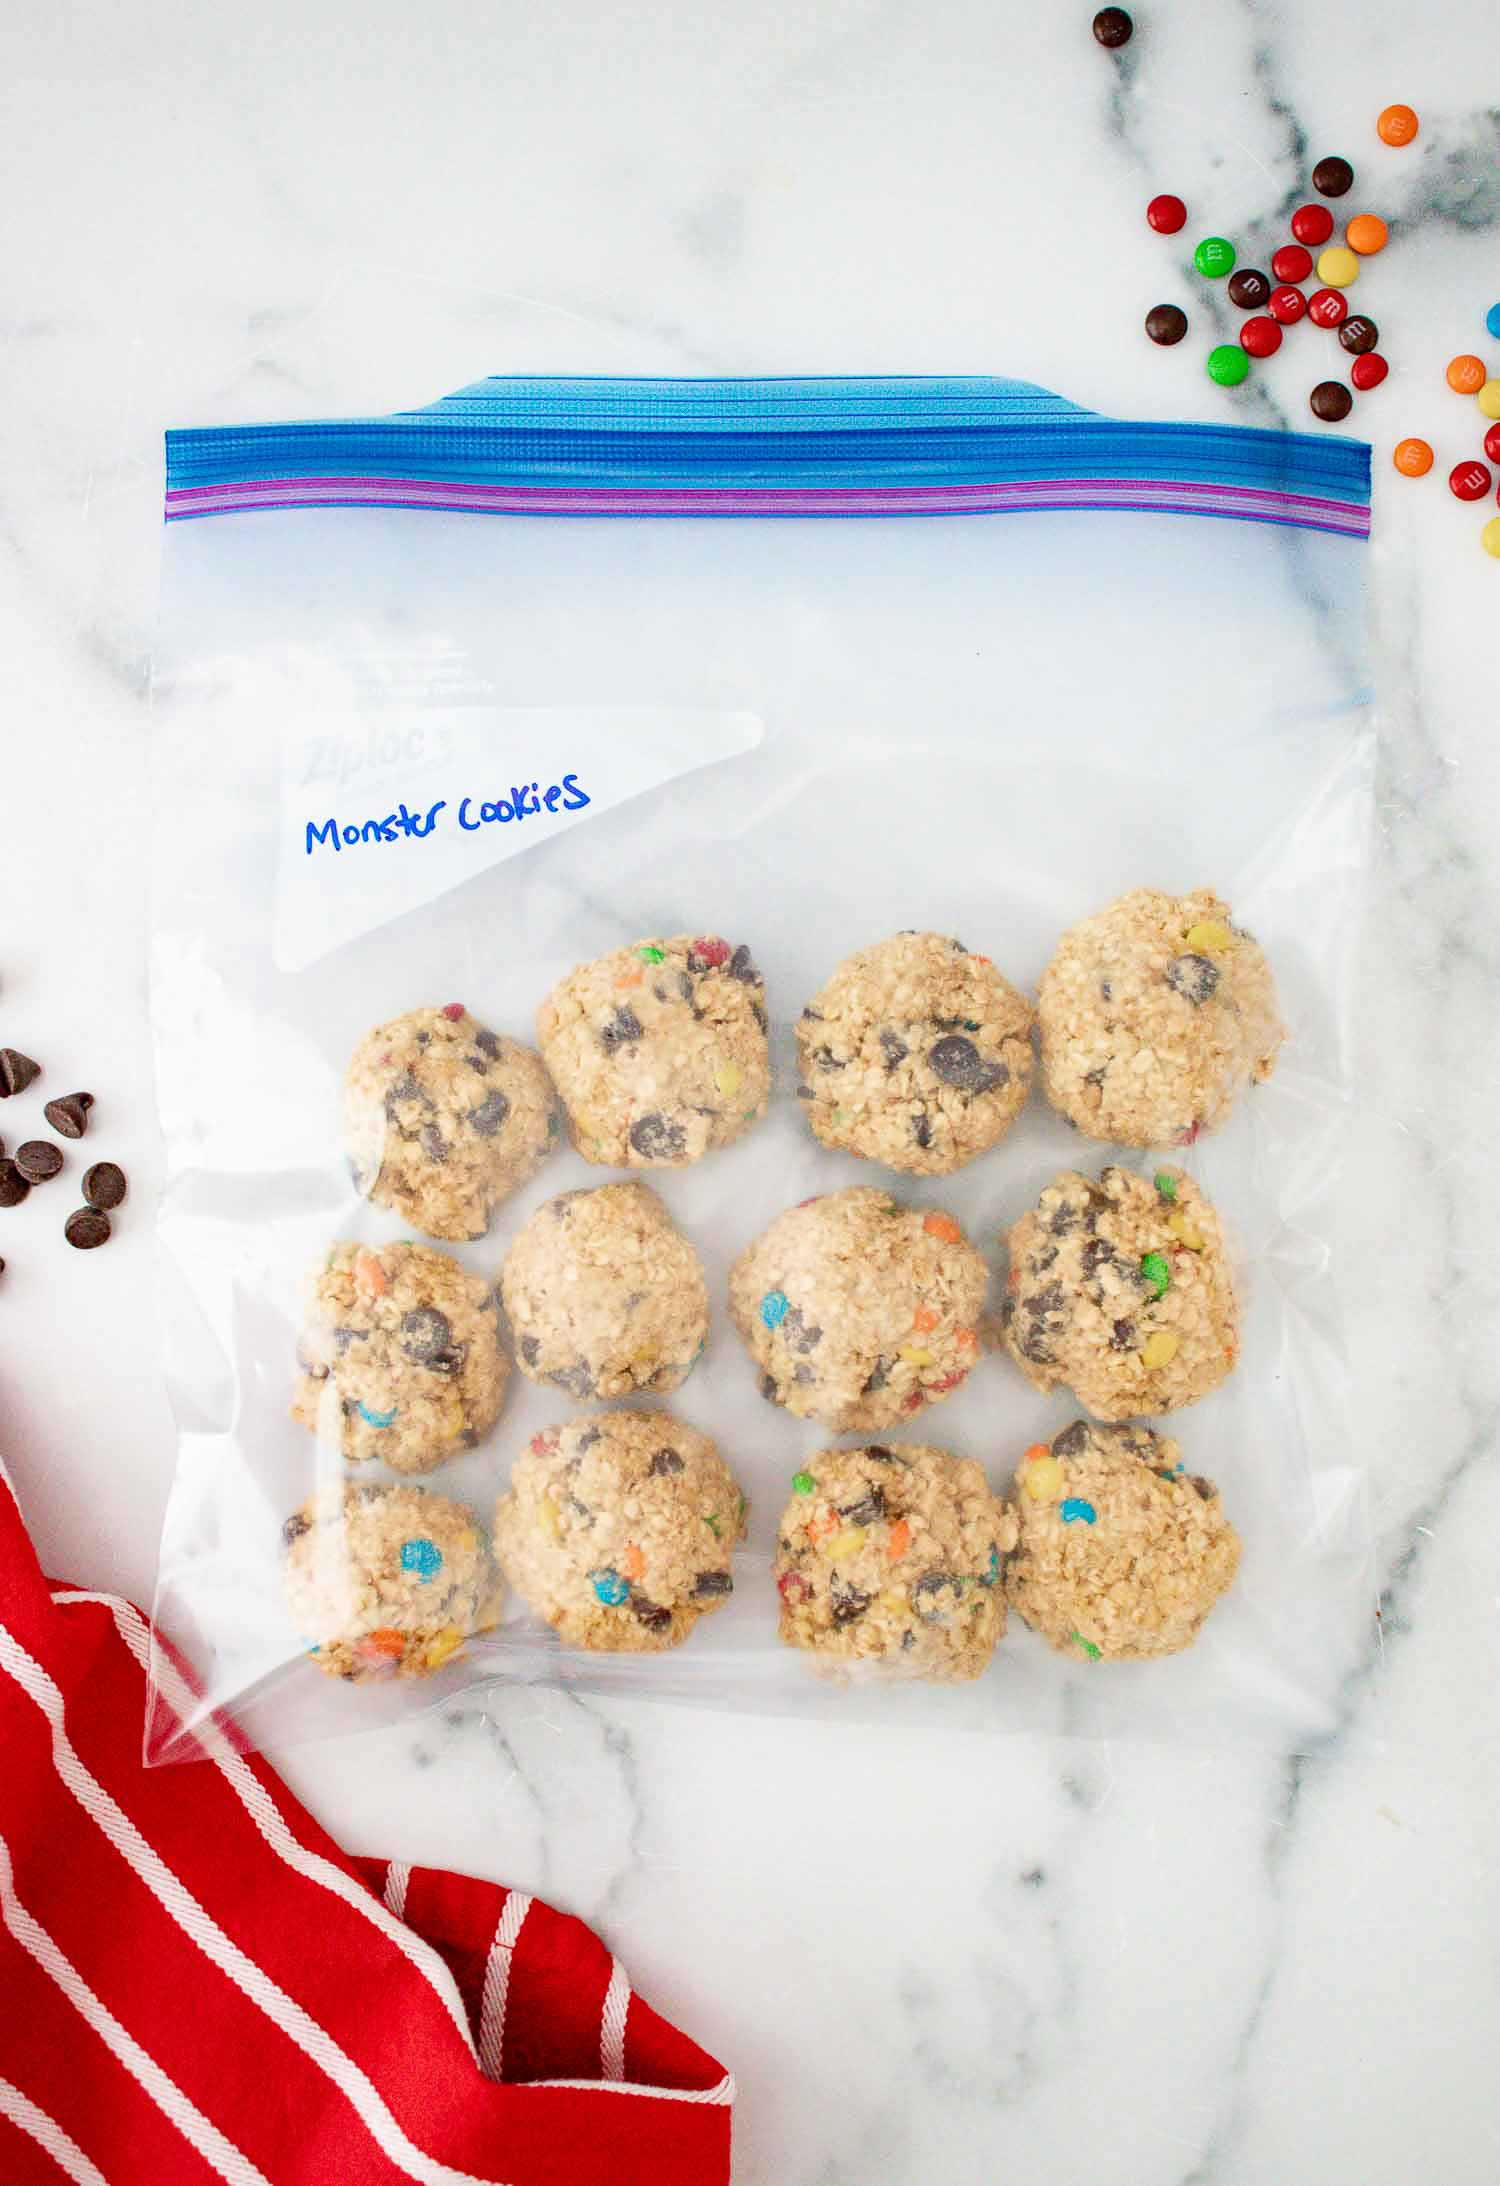 """A freezer ziploc bag with unbaked monster cookies in it with the words """"monster cookies"""" written on it."""